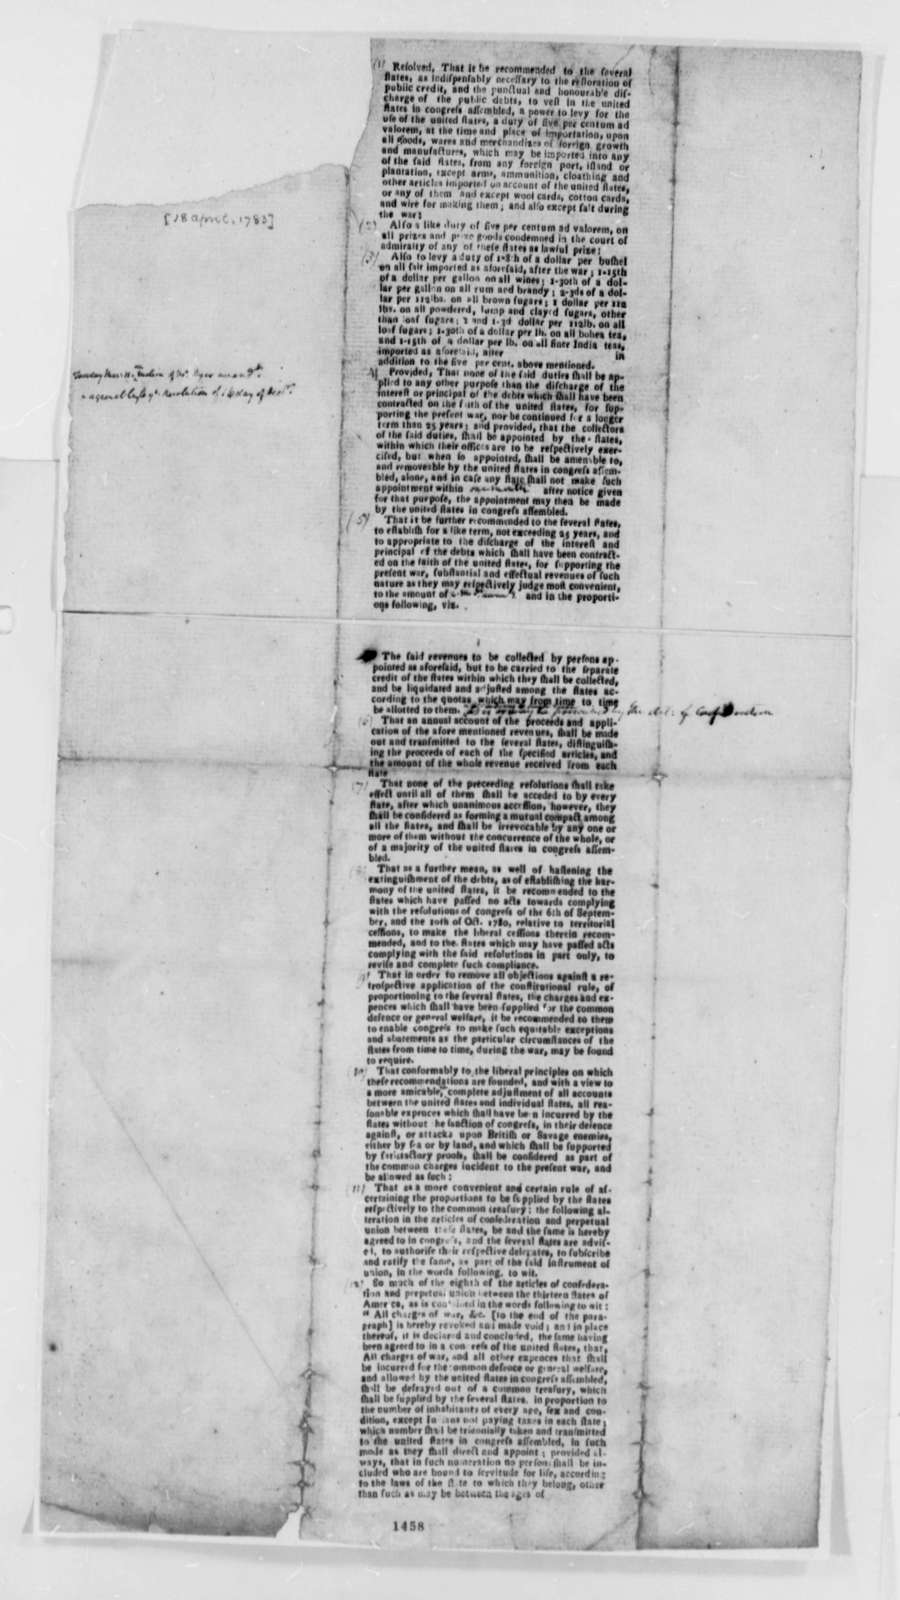 United States Congress, April 18, 1783, Printed Resolution on Import Duties to Pay Public Debt